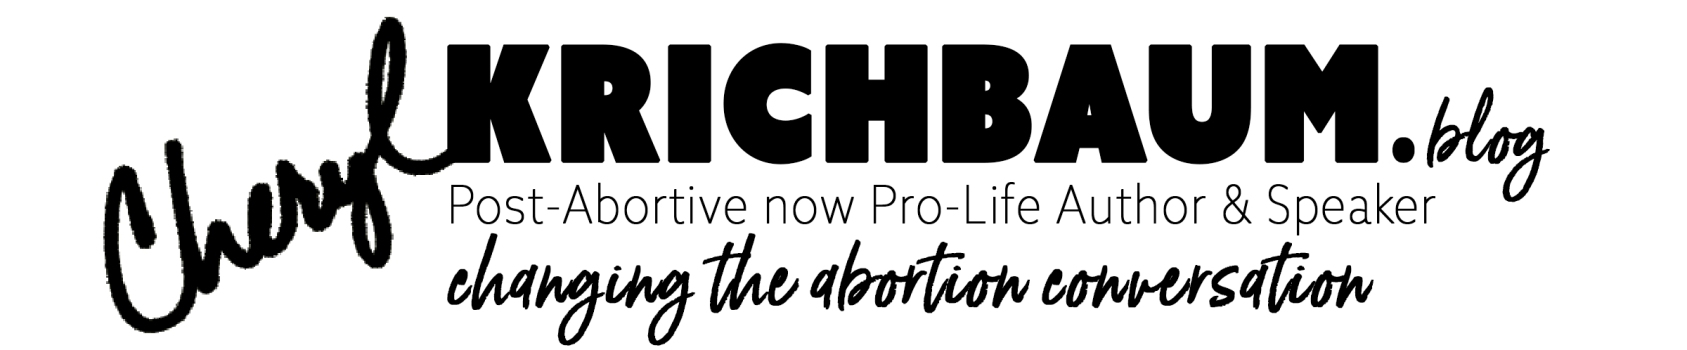 Cheryl Krichbaum, Post-Abortive Now Pro-Life Author & Speaker, Changing the Abortion Conversation